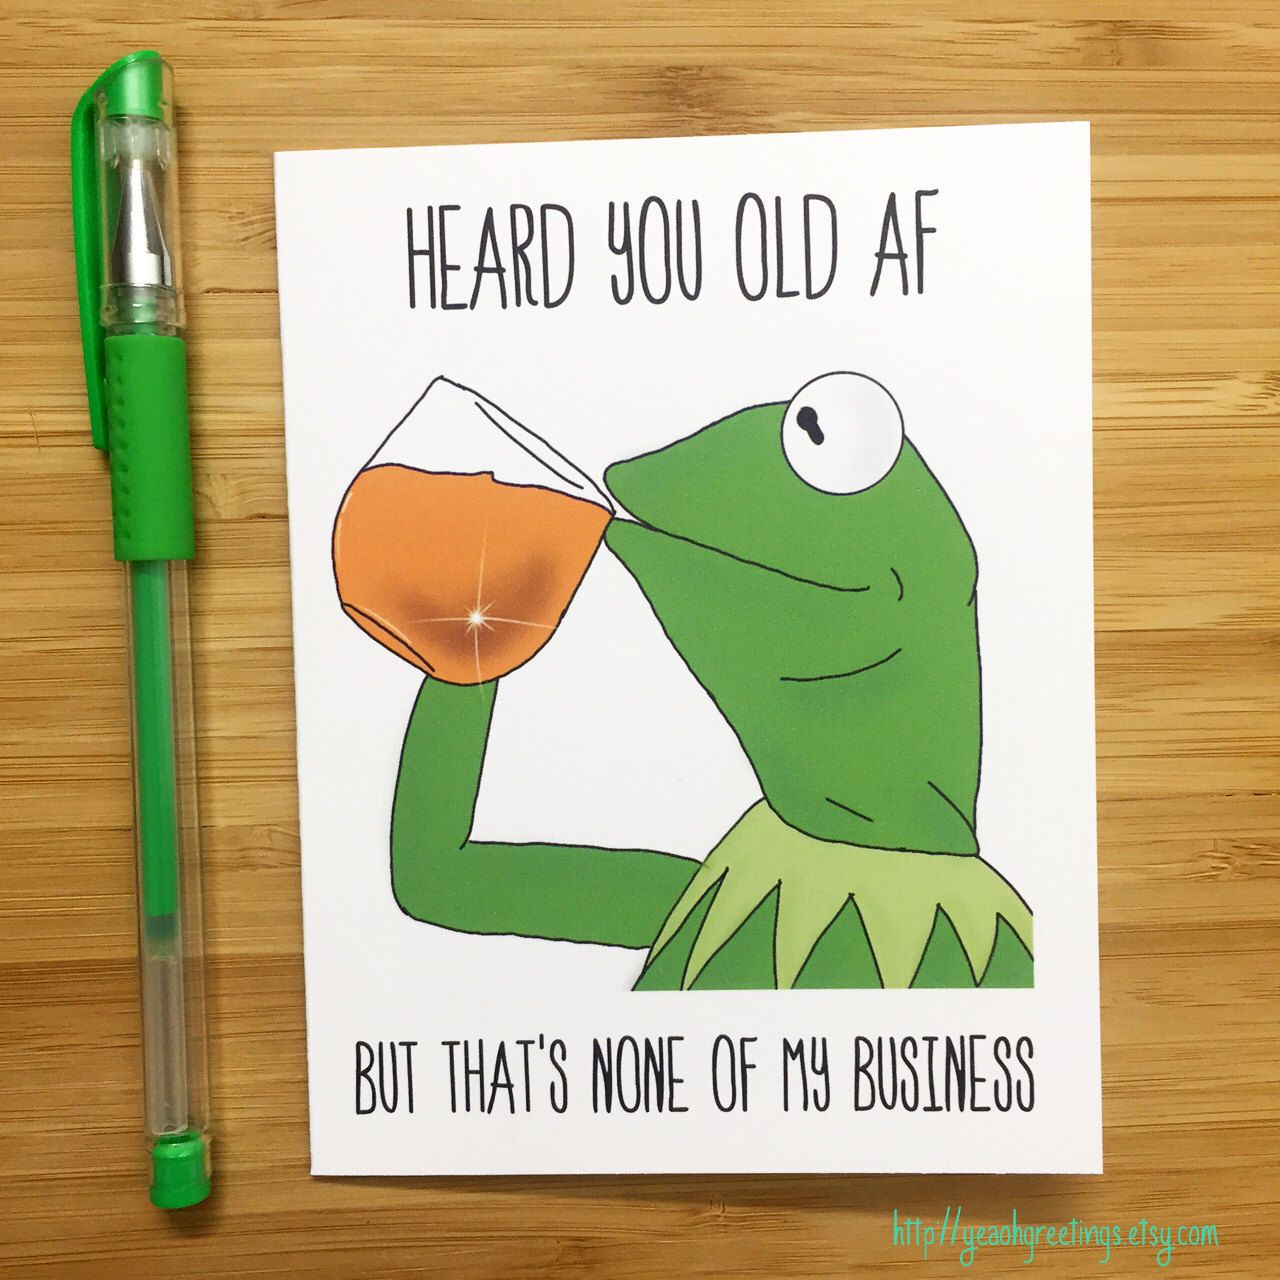 Funny birthday card kermit the frog kermit muppets meme card funny birthday card kermit the frog kermit muppets meme card birthday kristyandbryce Gallery